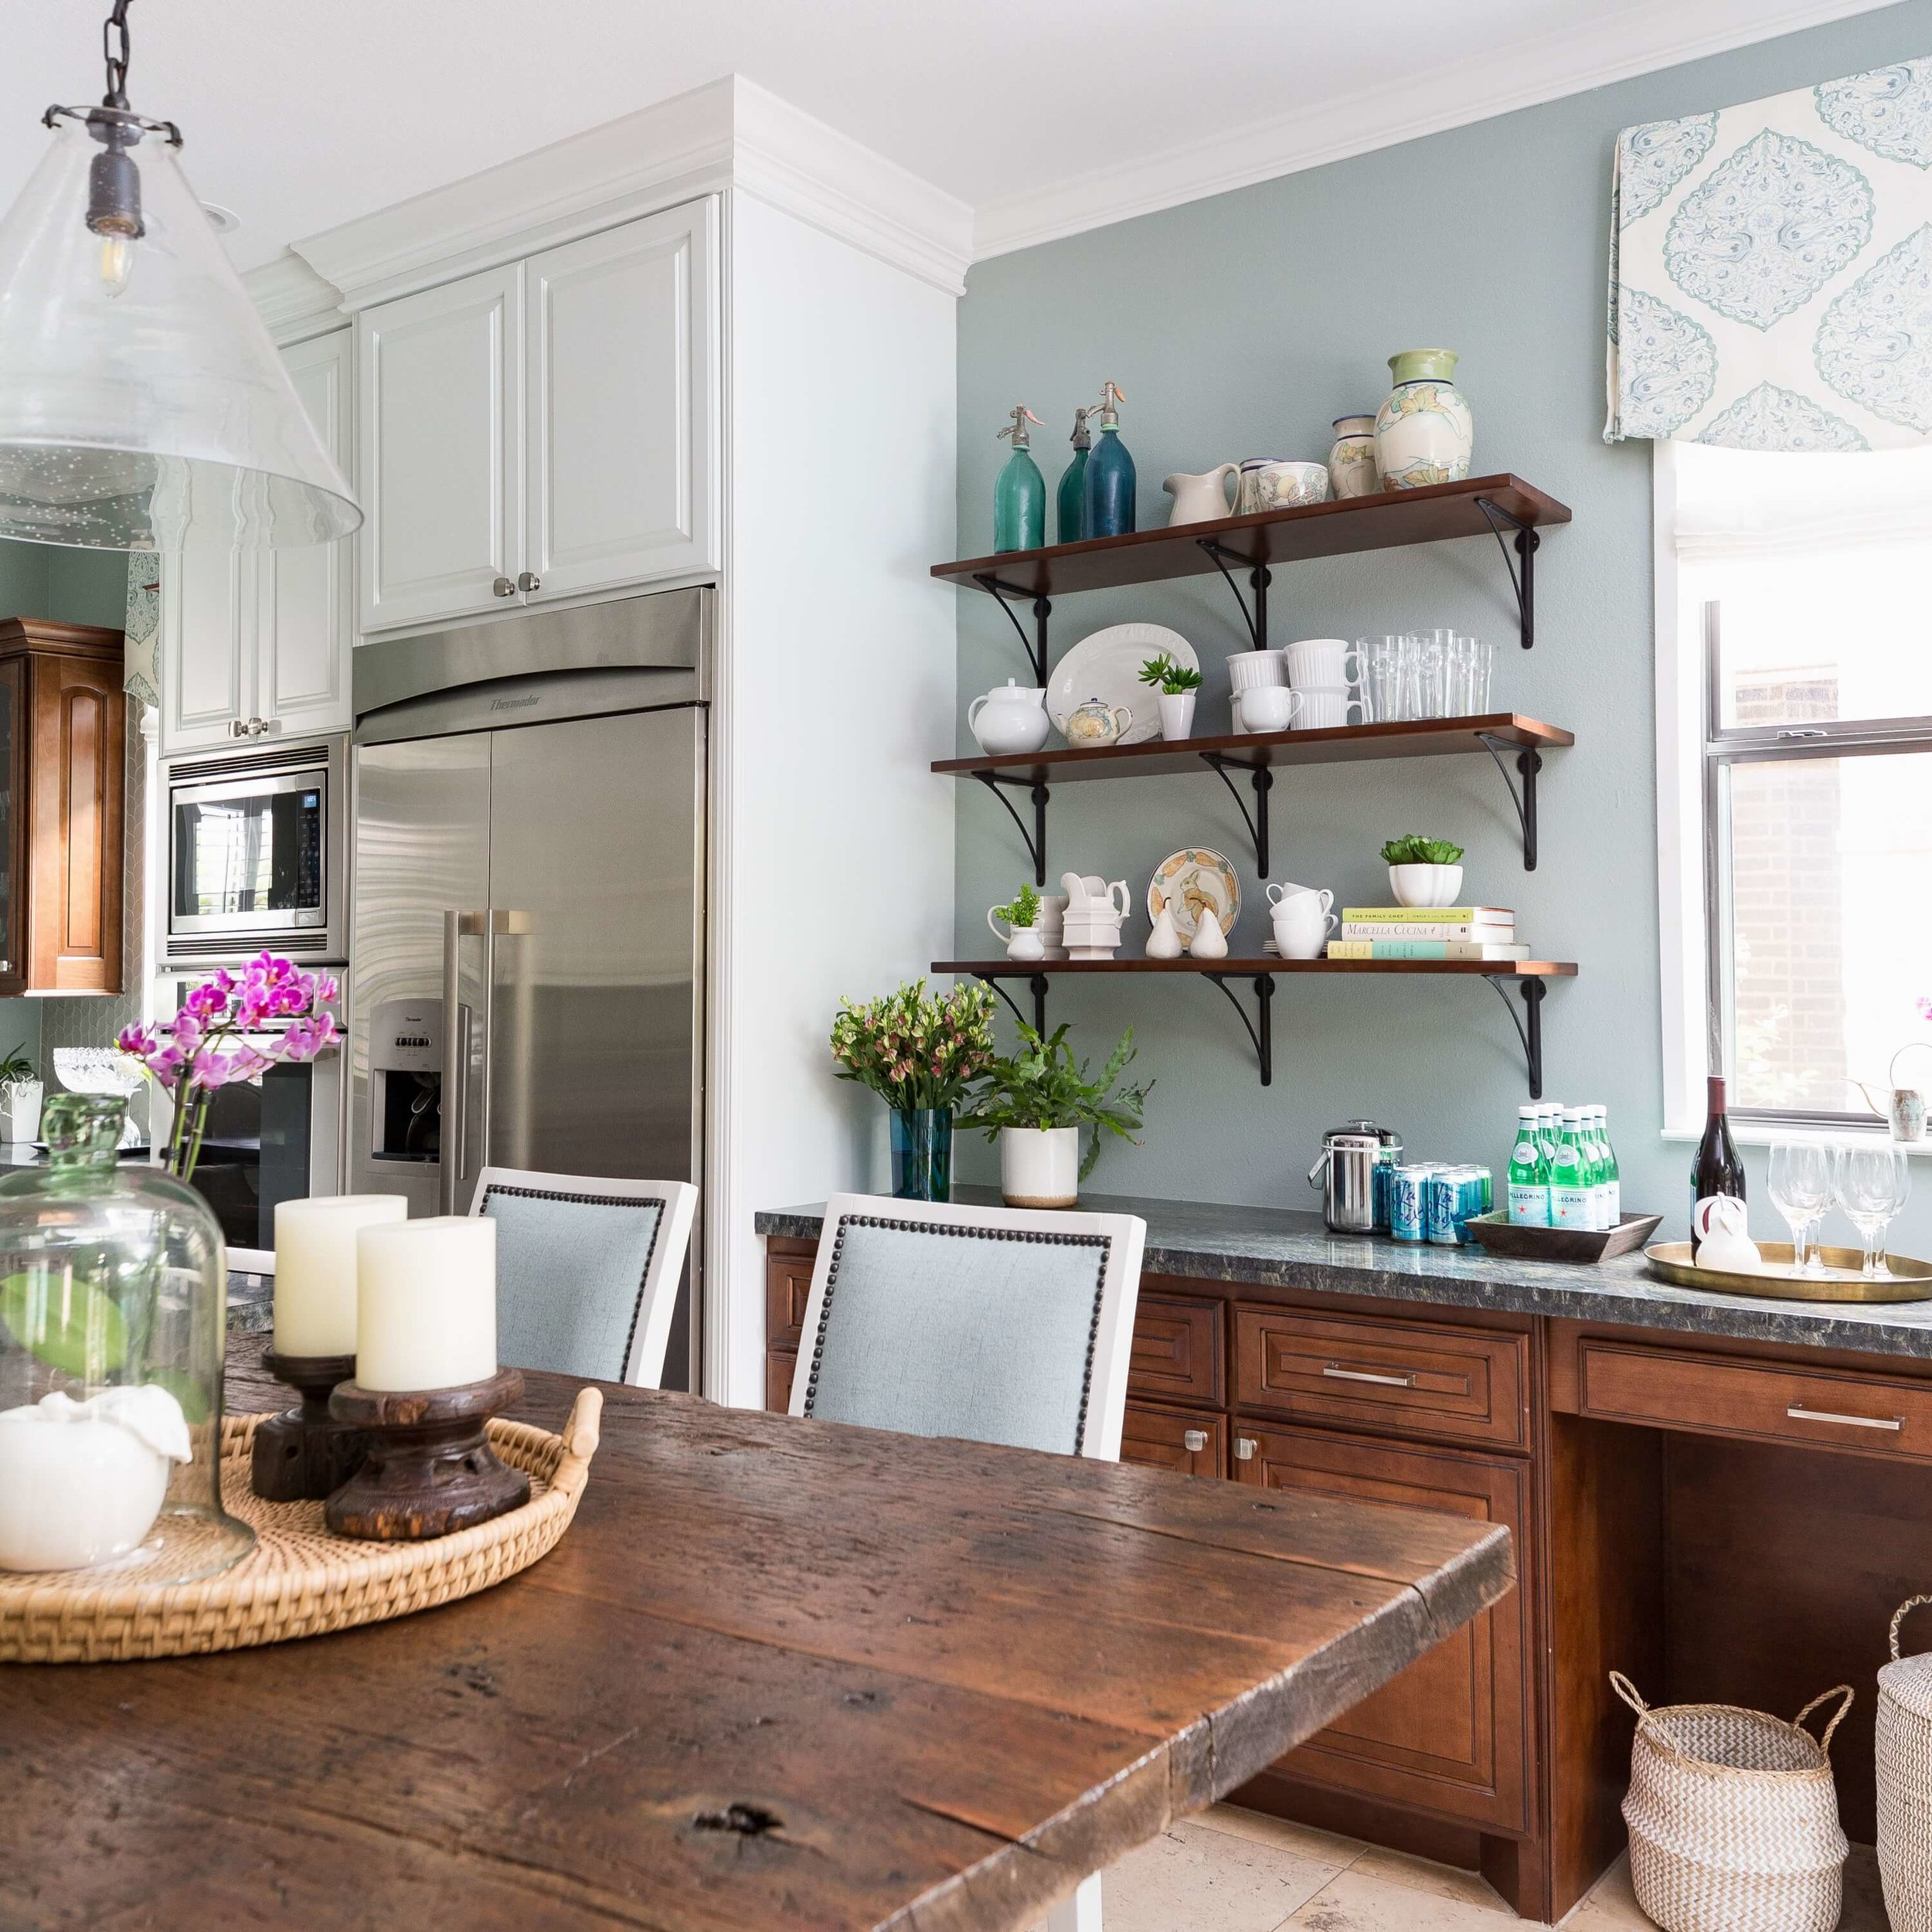 Coastal style kitchen makeover w/ open shelves and reclaimed wood countertop - Carla Aston, Designer | Colleen Scott, Photographer | #turquoisekitchen #coastalkitchen #openshelves